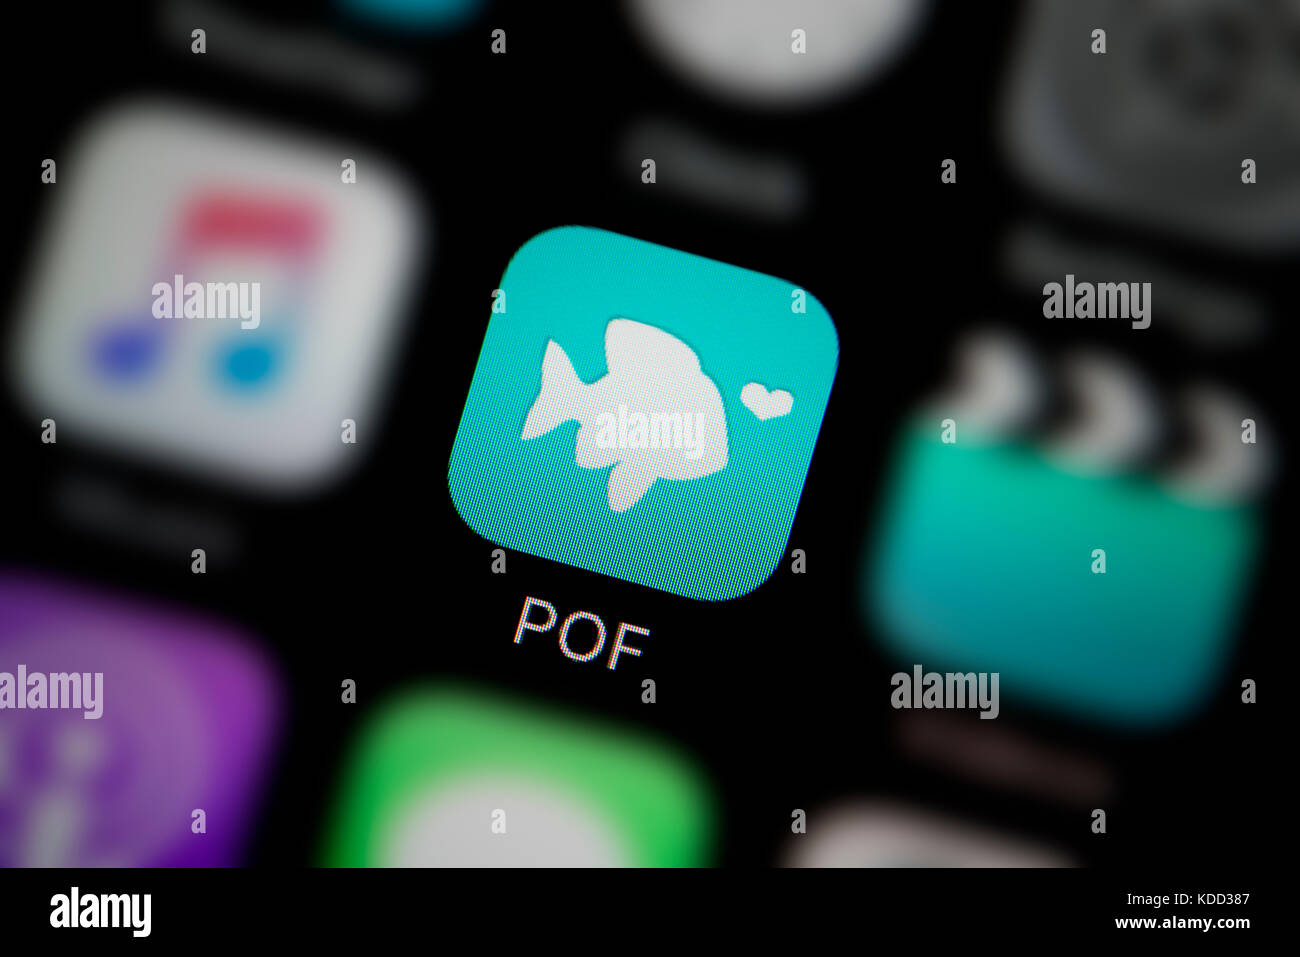 Pof stock photos pof stock images alamy for How does plenty of fish work